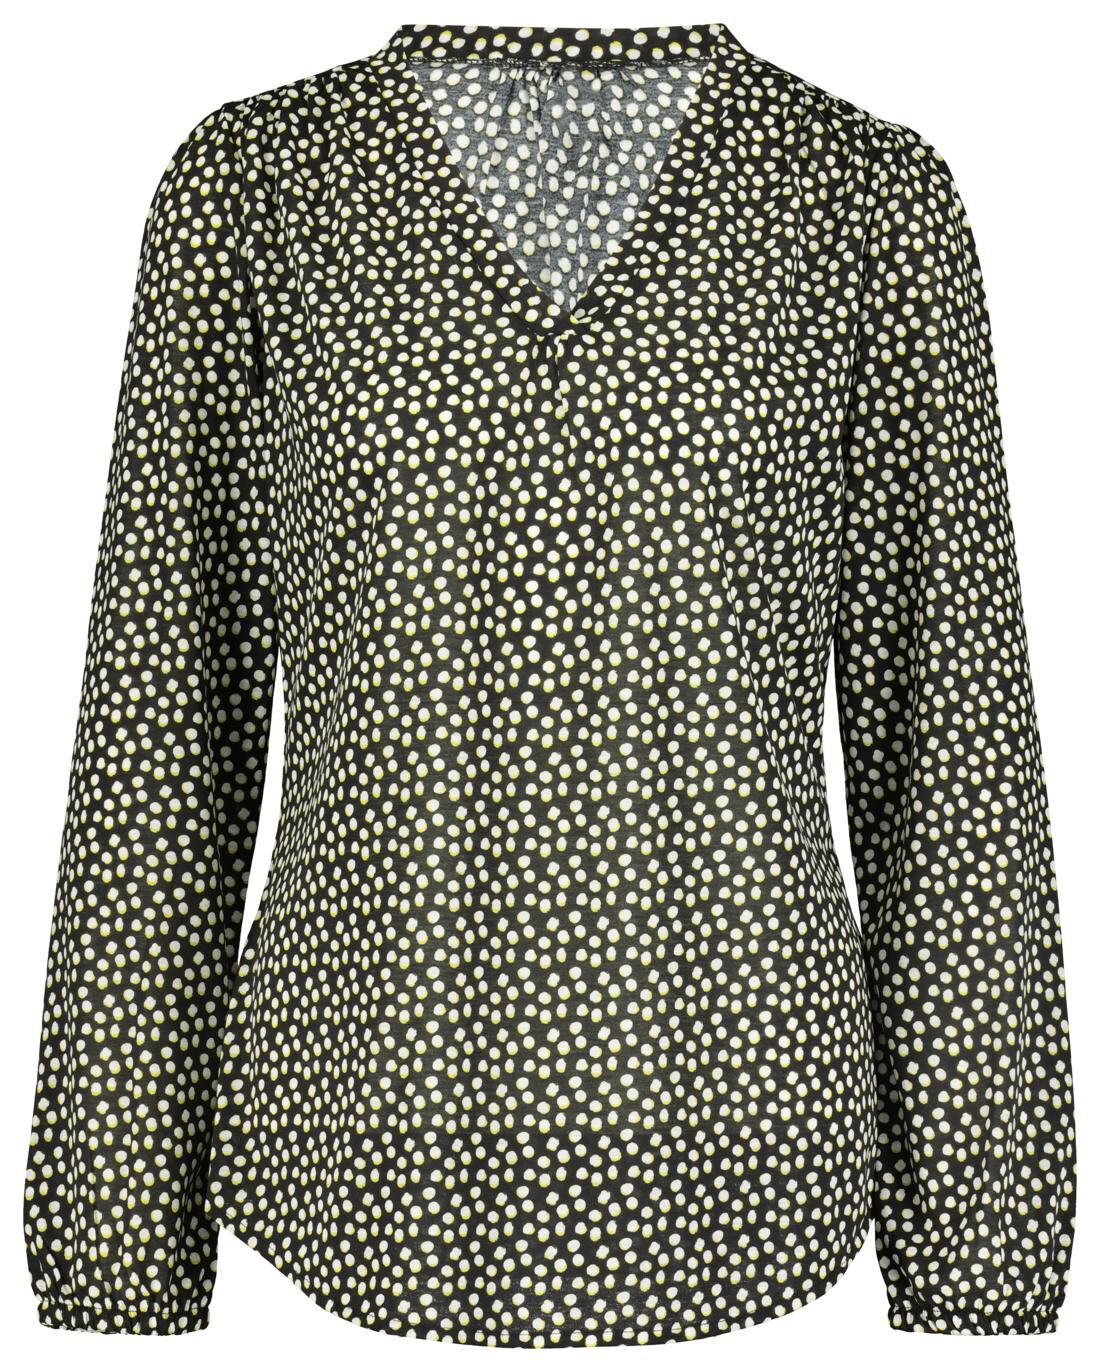 HEMA Dames Top Gerecycled Zwart/wit (zwart/wit)